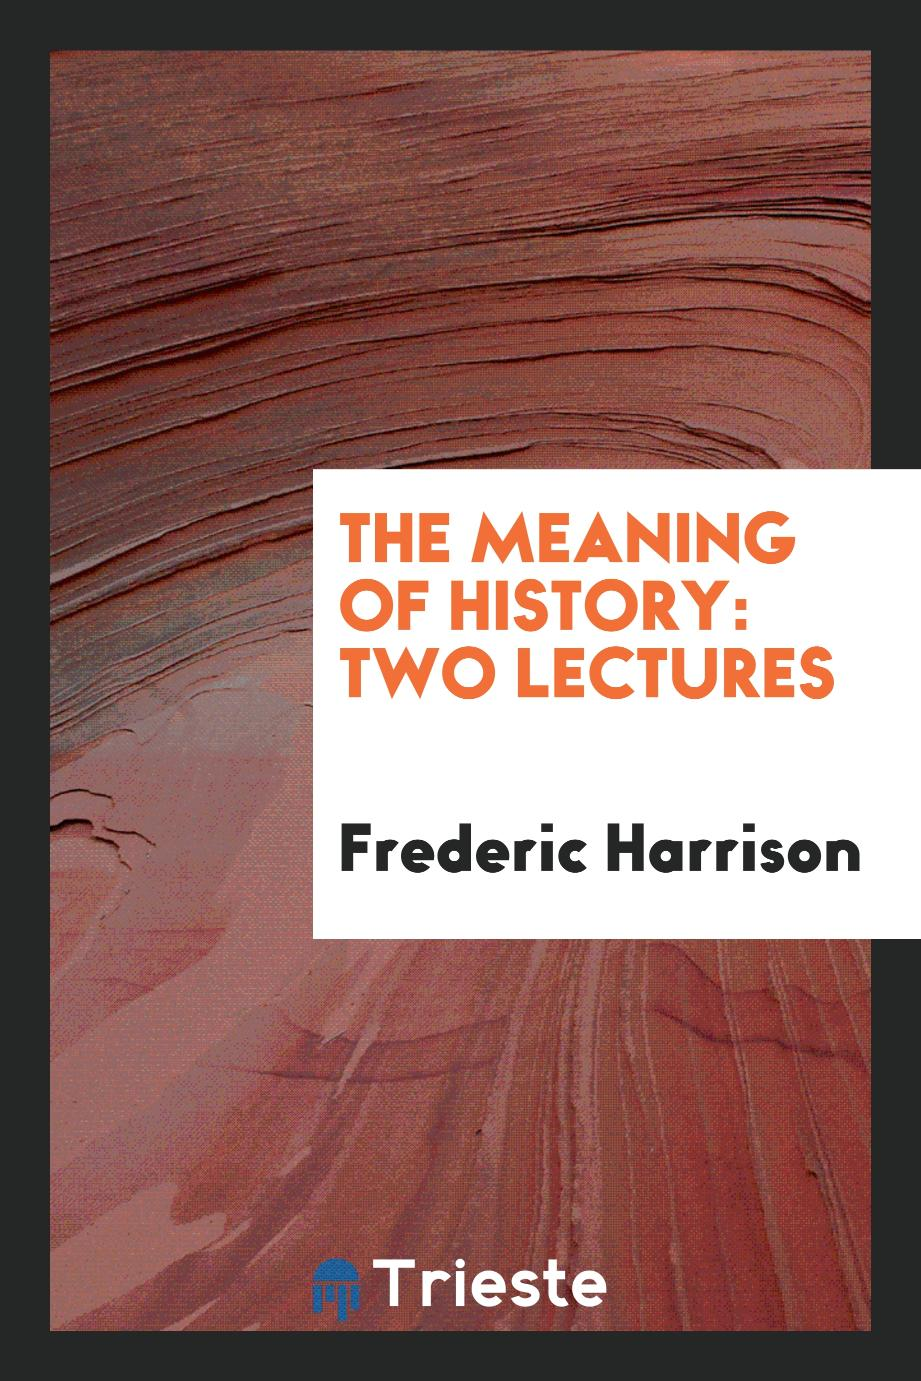 The Meaning of History: Two Lectures